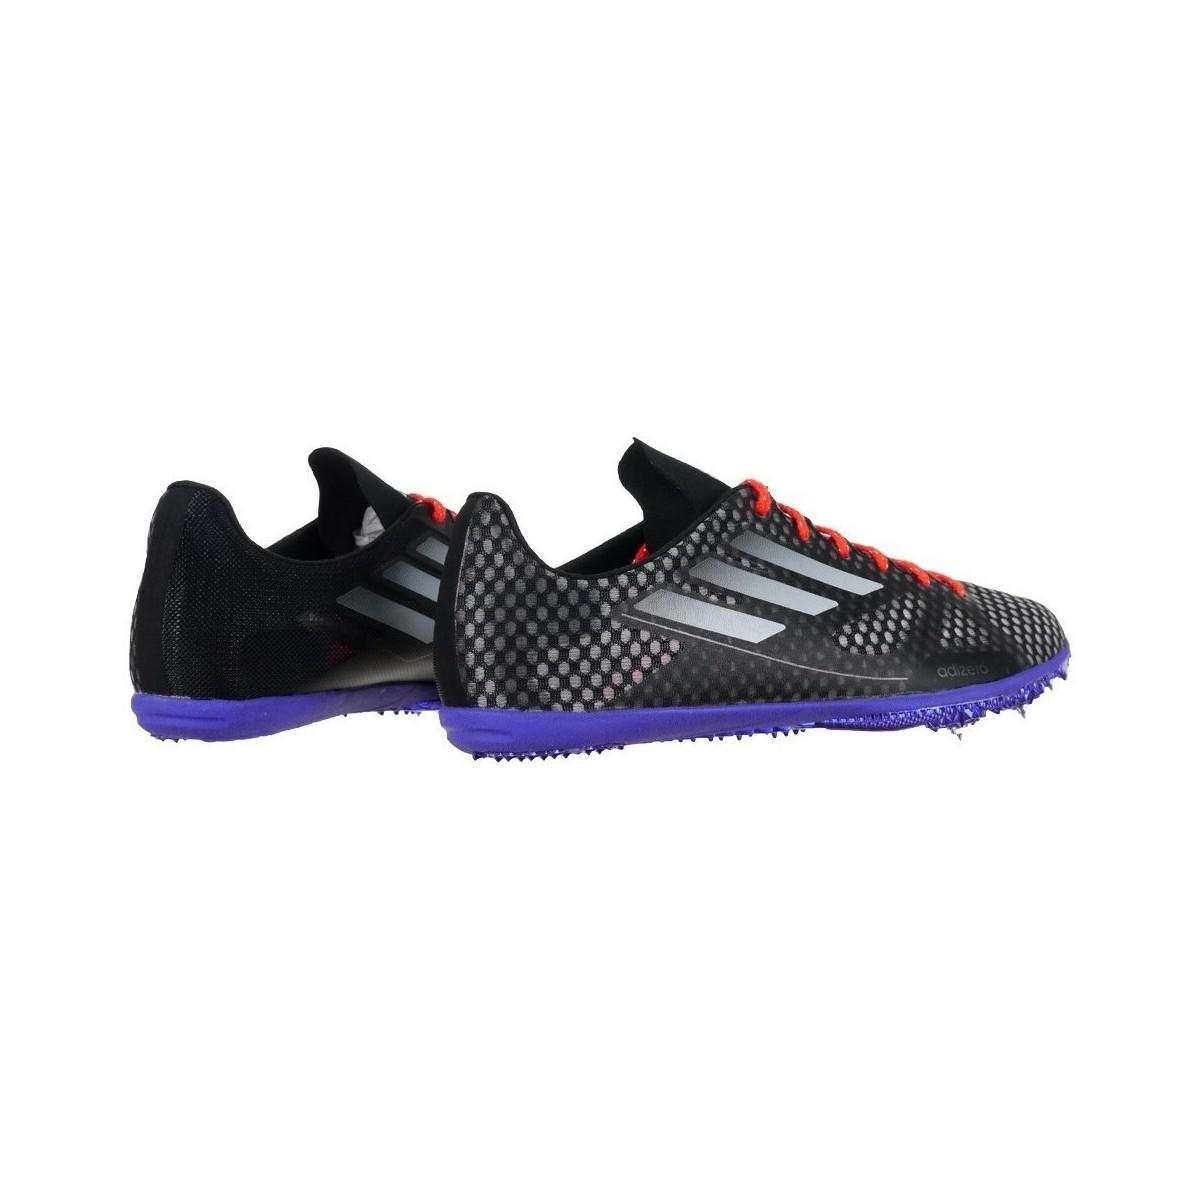 best authentic 91ca5 15194 Adidas Adizero Ambition 2 Men s Running Trainers In Black in Black ...